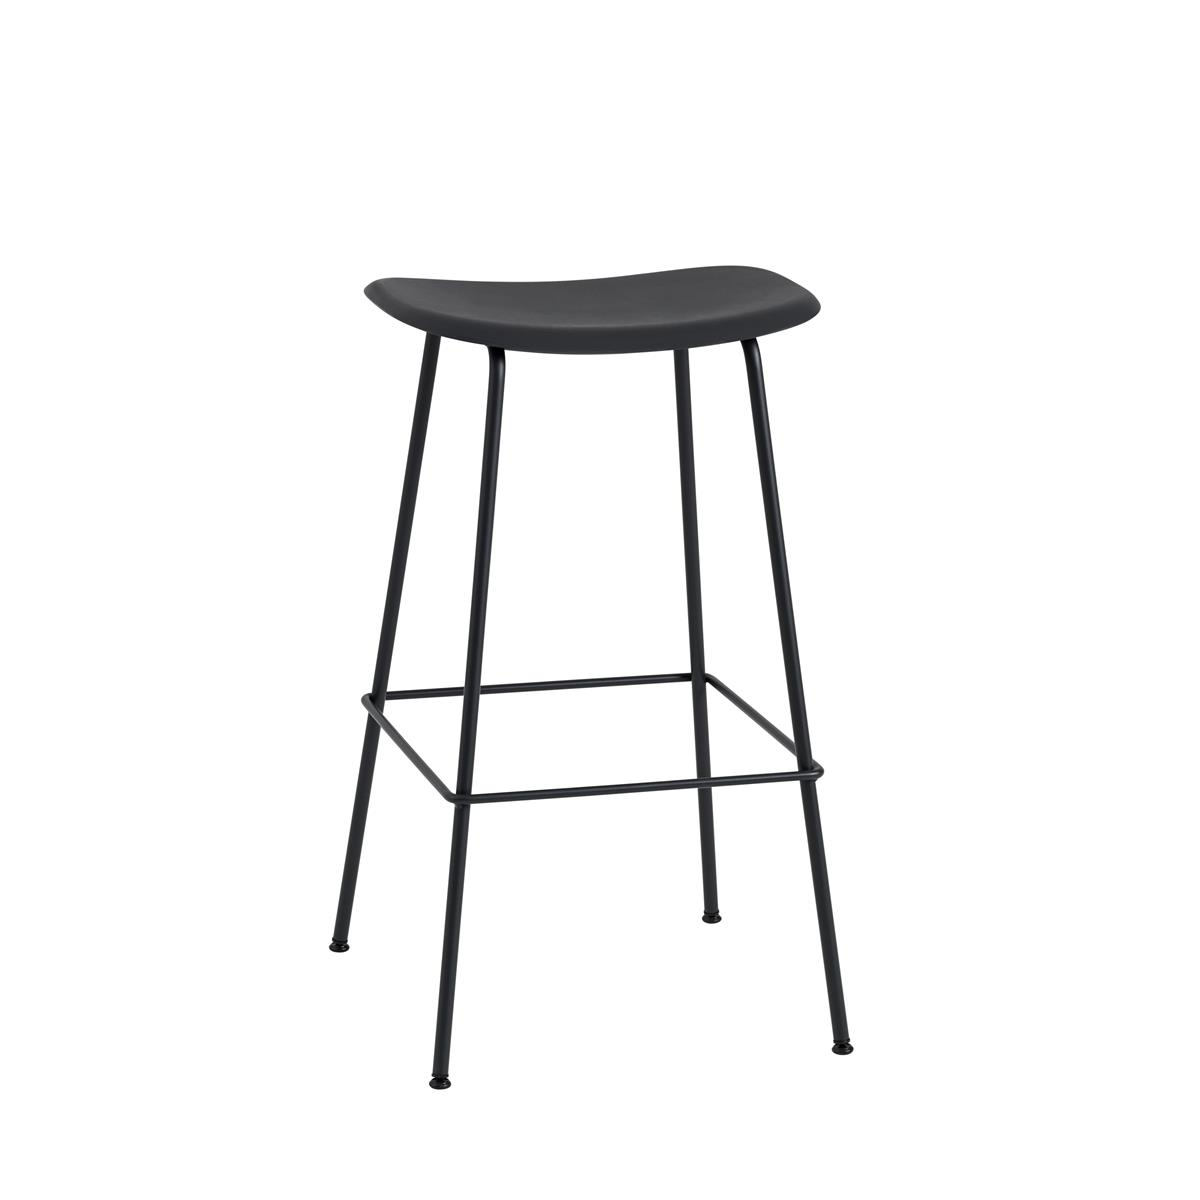 Fiber Bar Stool / Tube Base H75 - Black